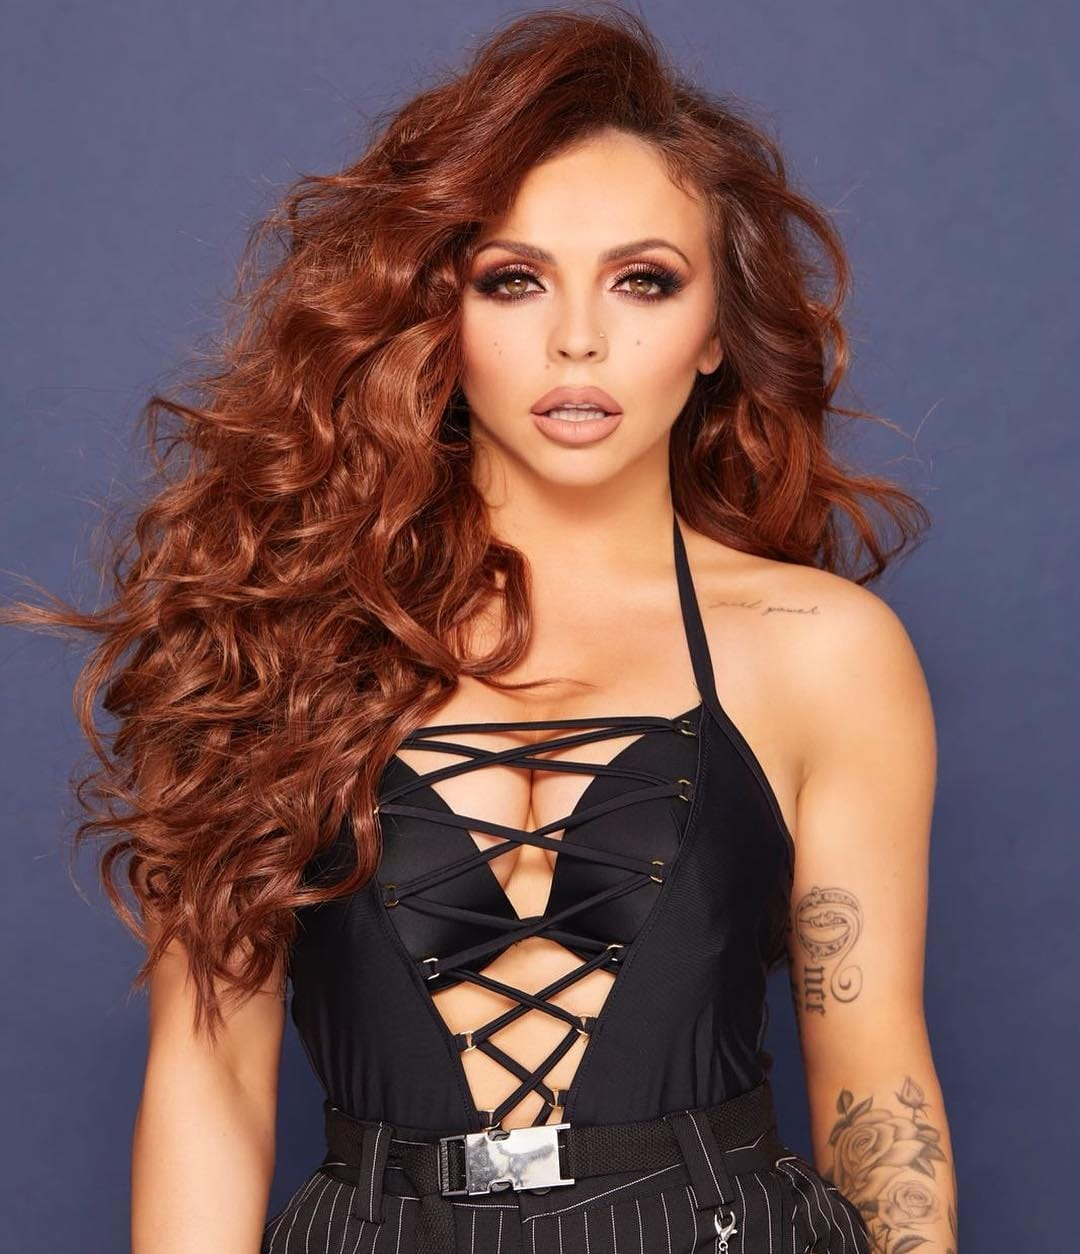 Ass Jesy Nelson nude (75 foto and video), Topless, Is a cute, Boobs, swimsuit 2019